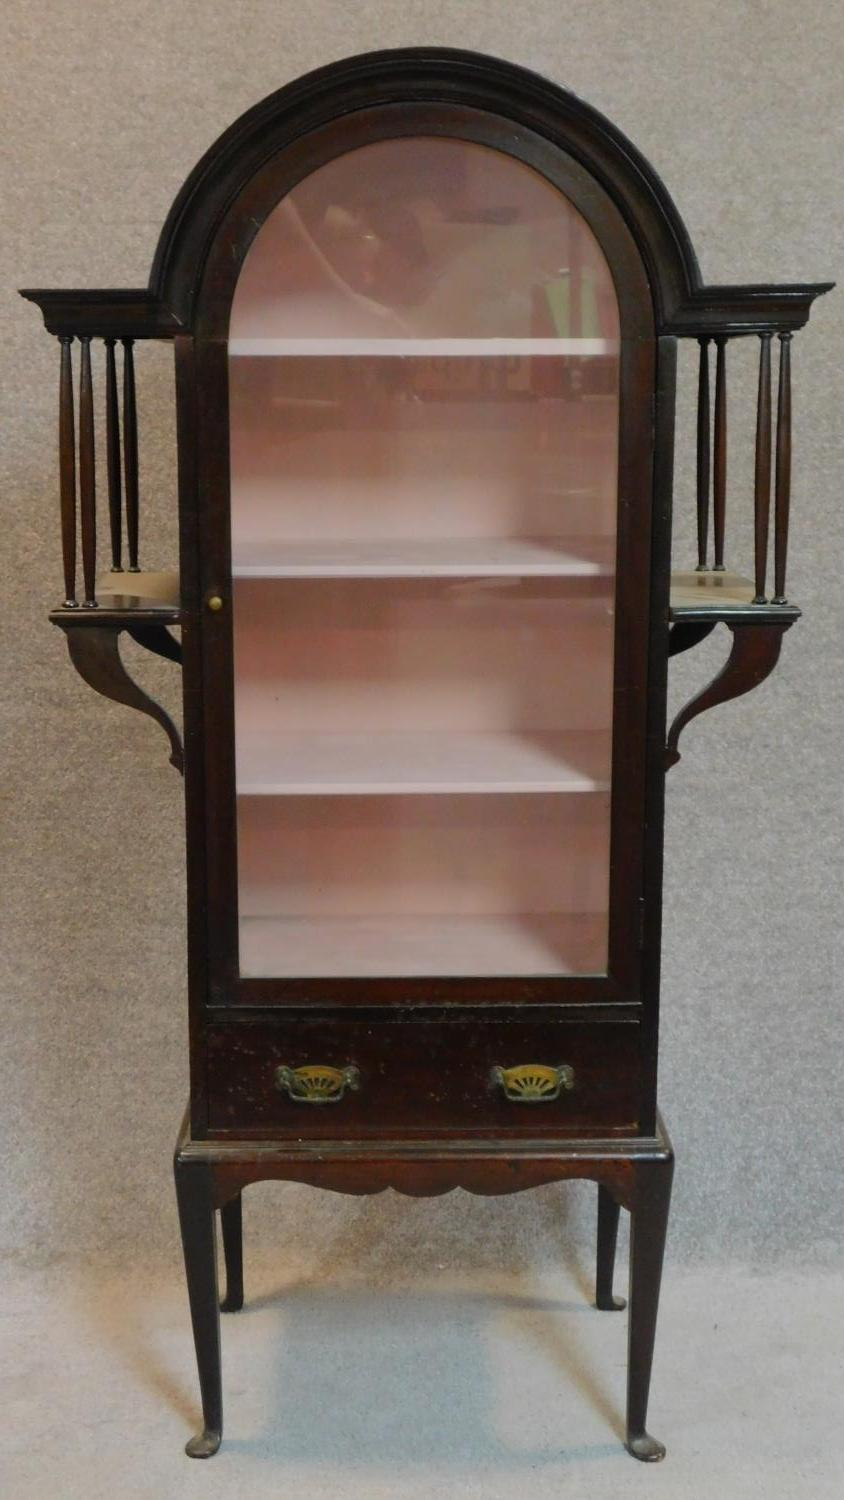 Lot 28 - A late 19th century mahogany domed top Art Nouveau style display cabinet on cabriole supports.